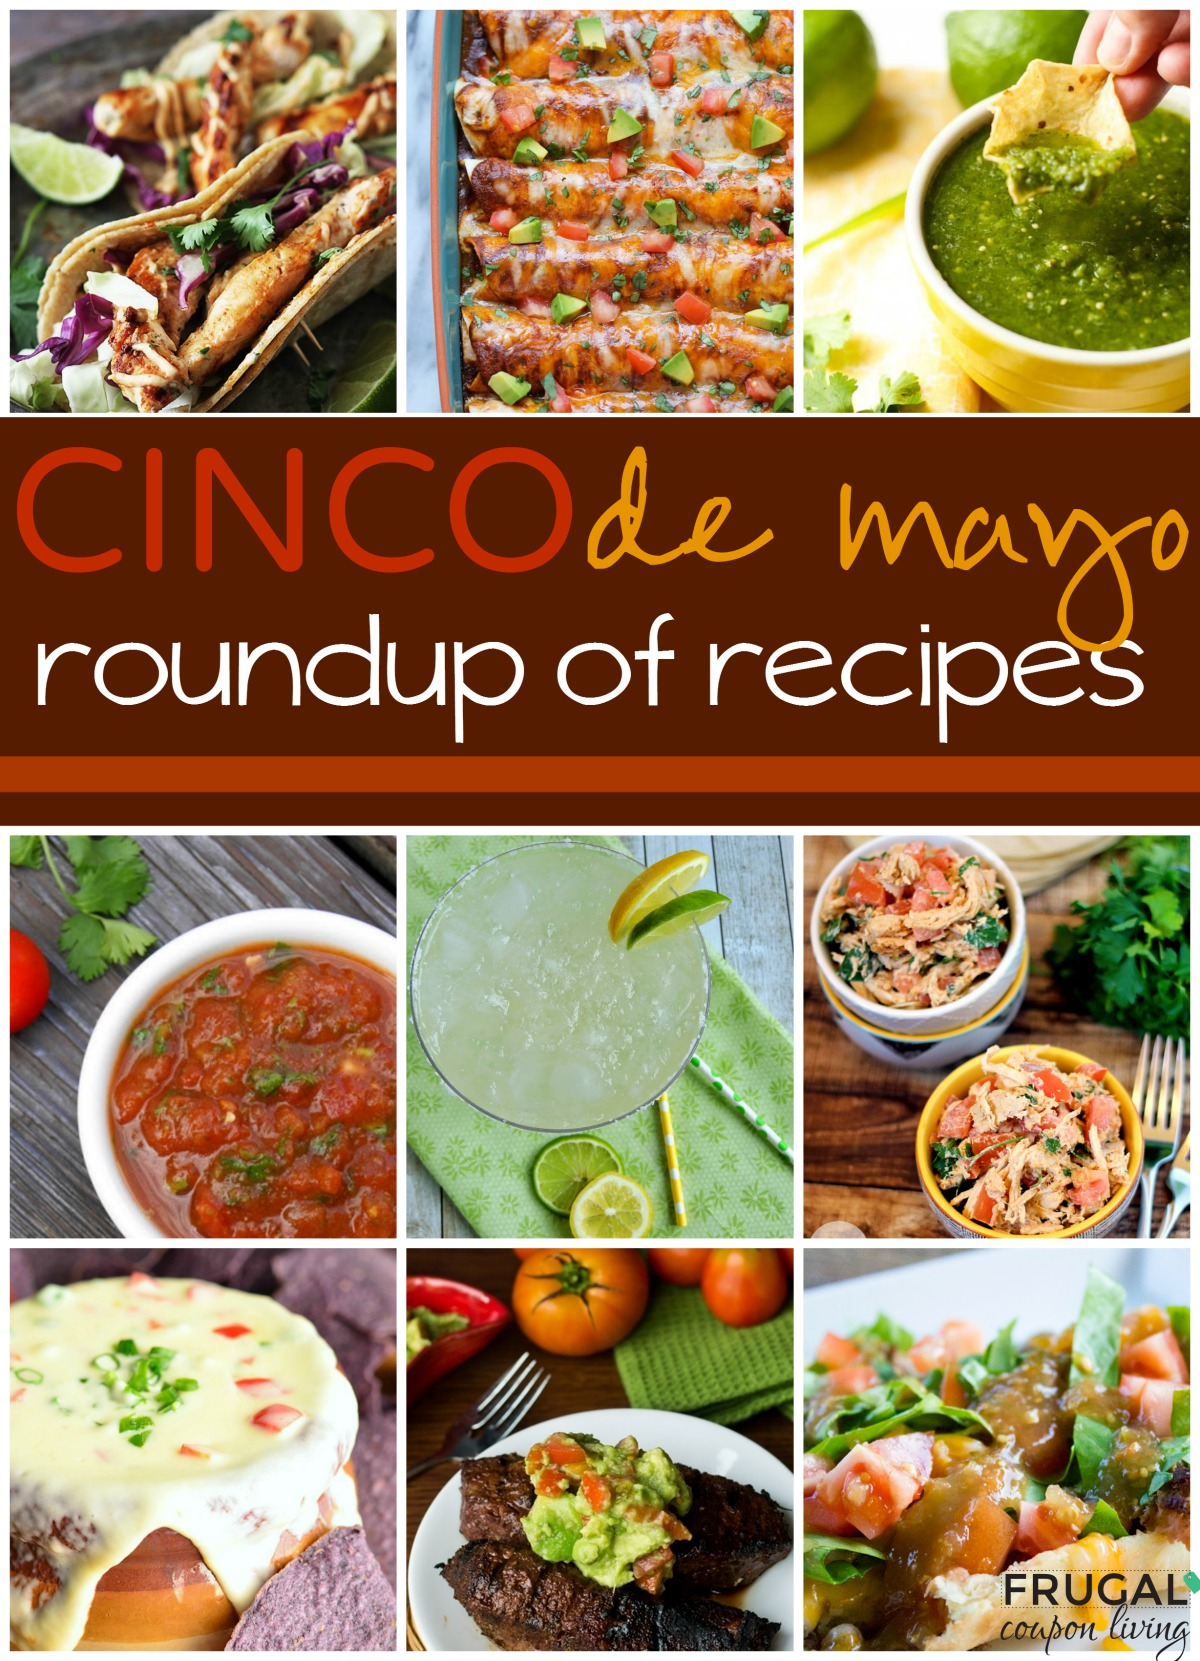 cinco-de-mayo-rounduup-recipes-frugal-coupon-living